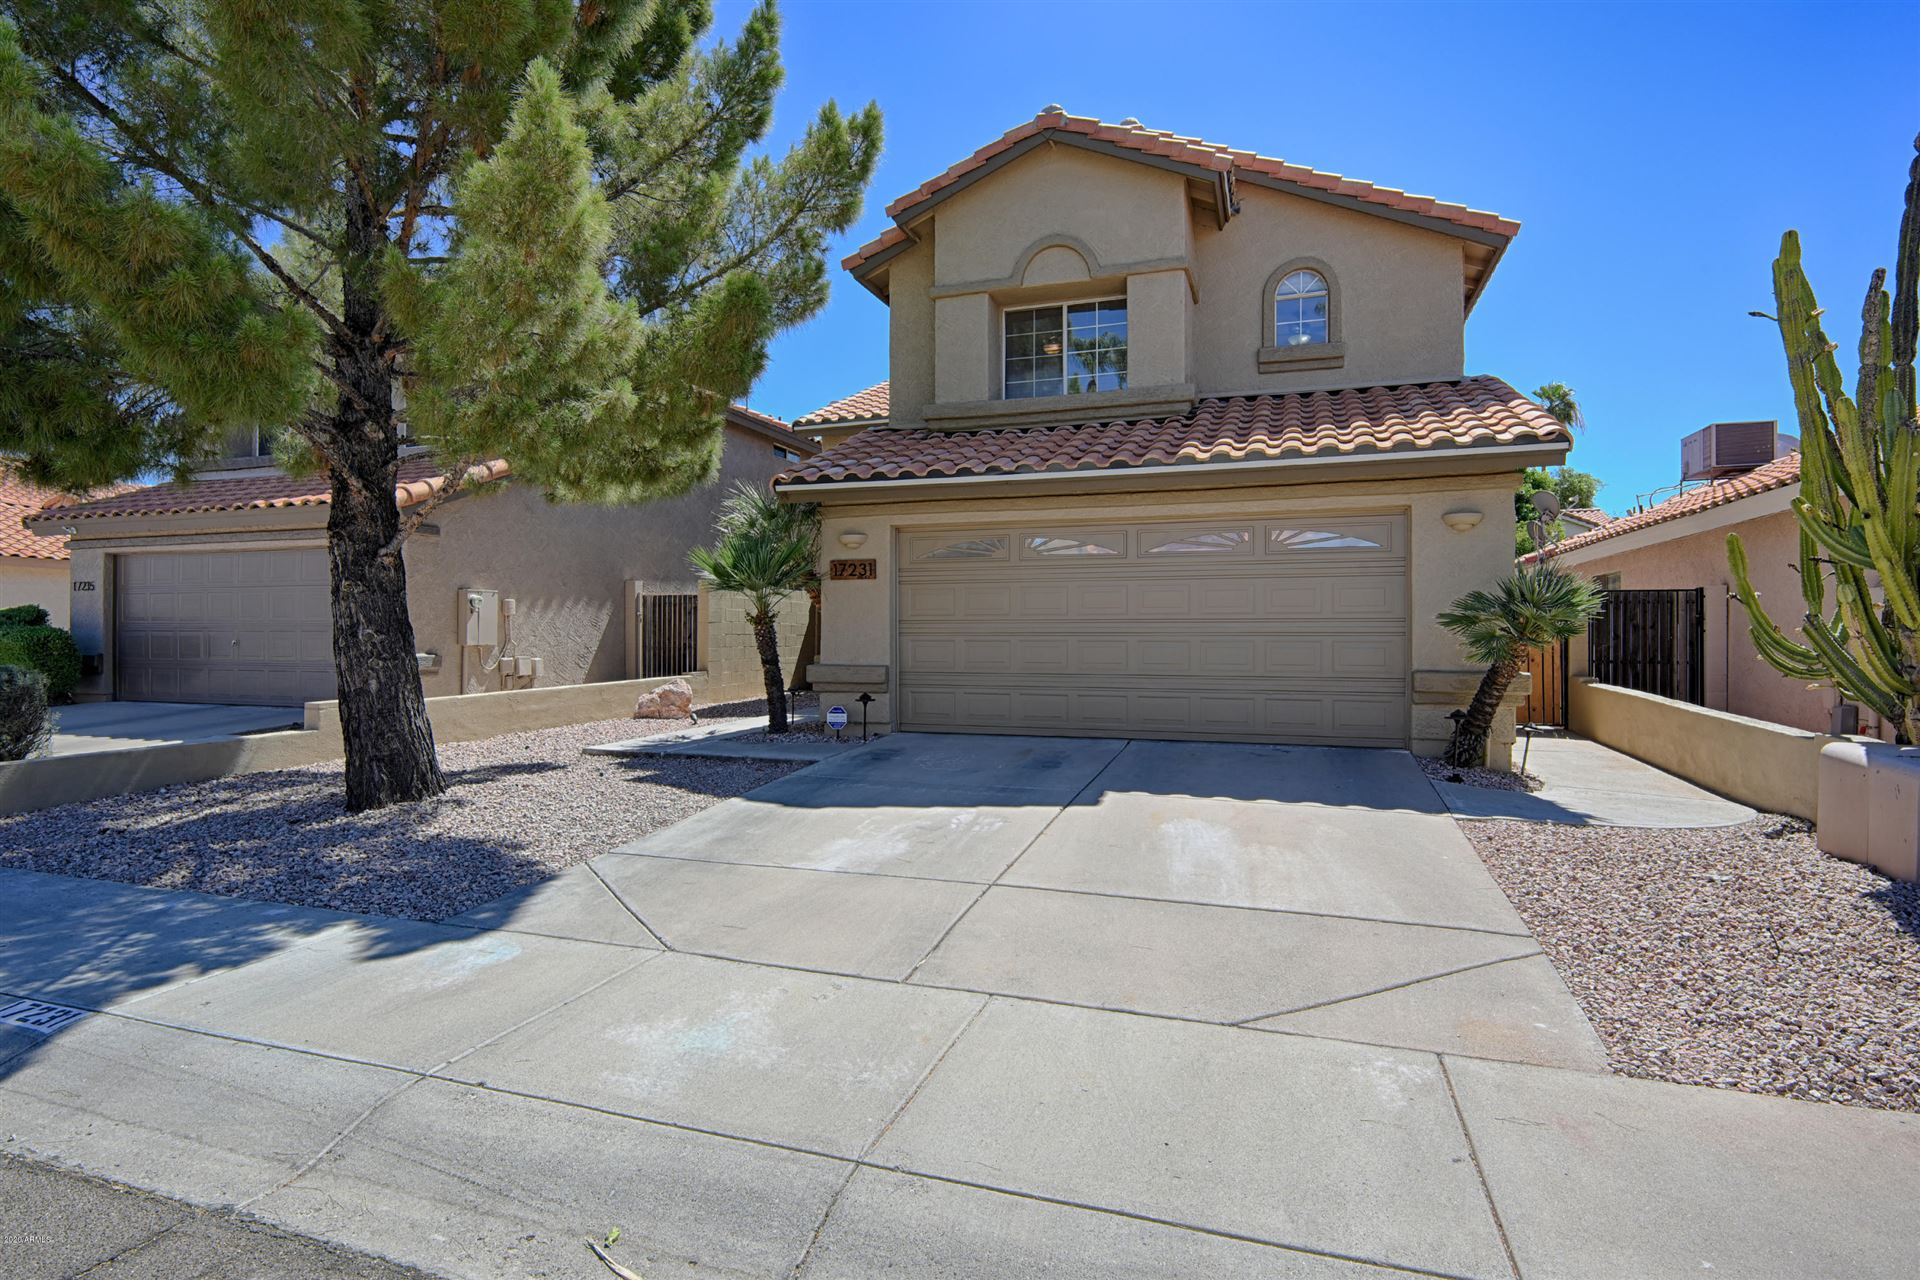 Property Image Of 17231 N 46Th Place In Phoenix, Az